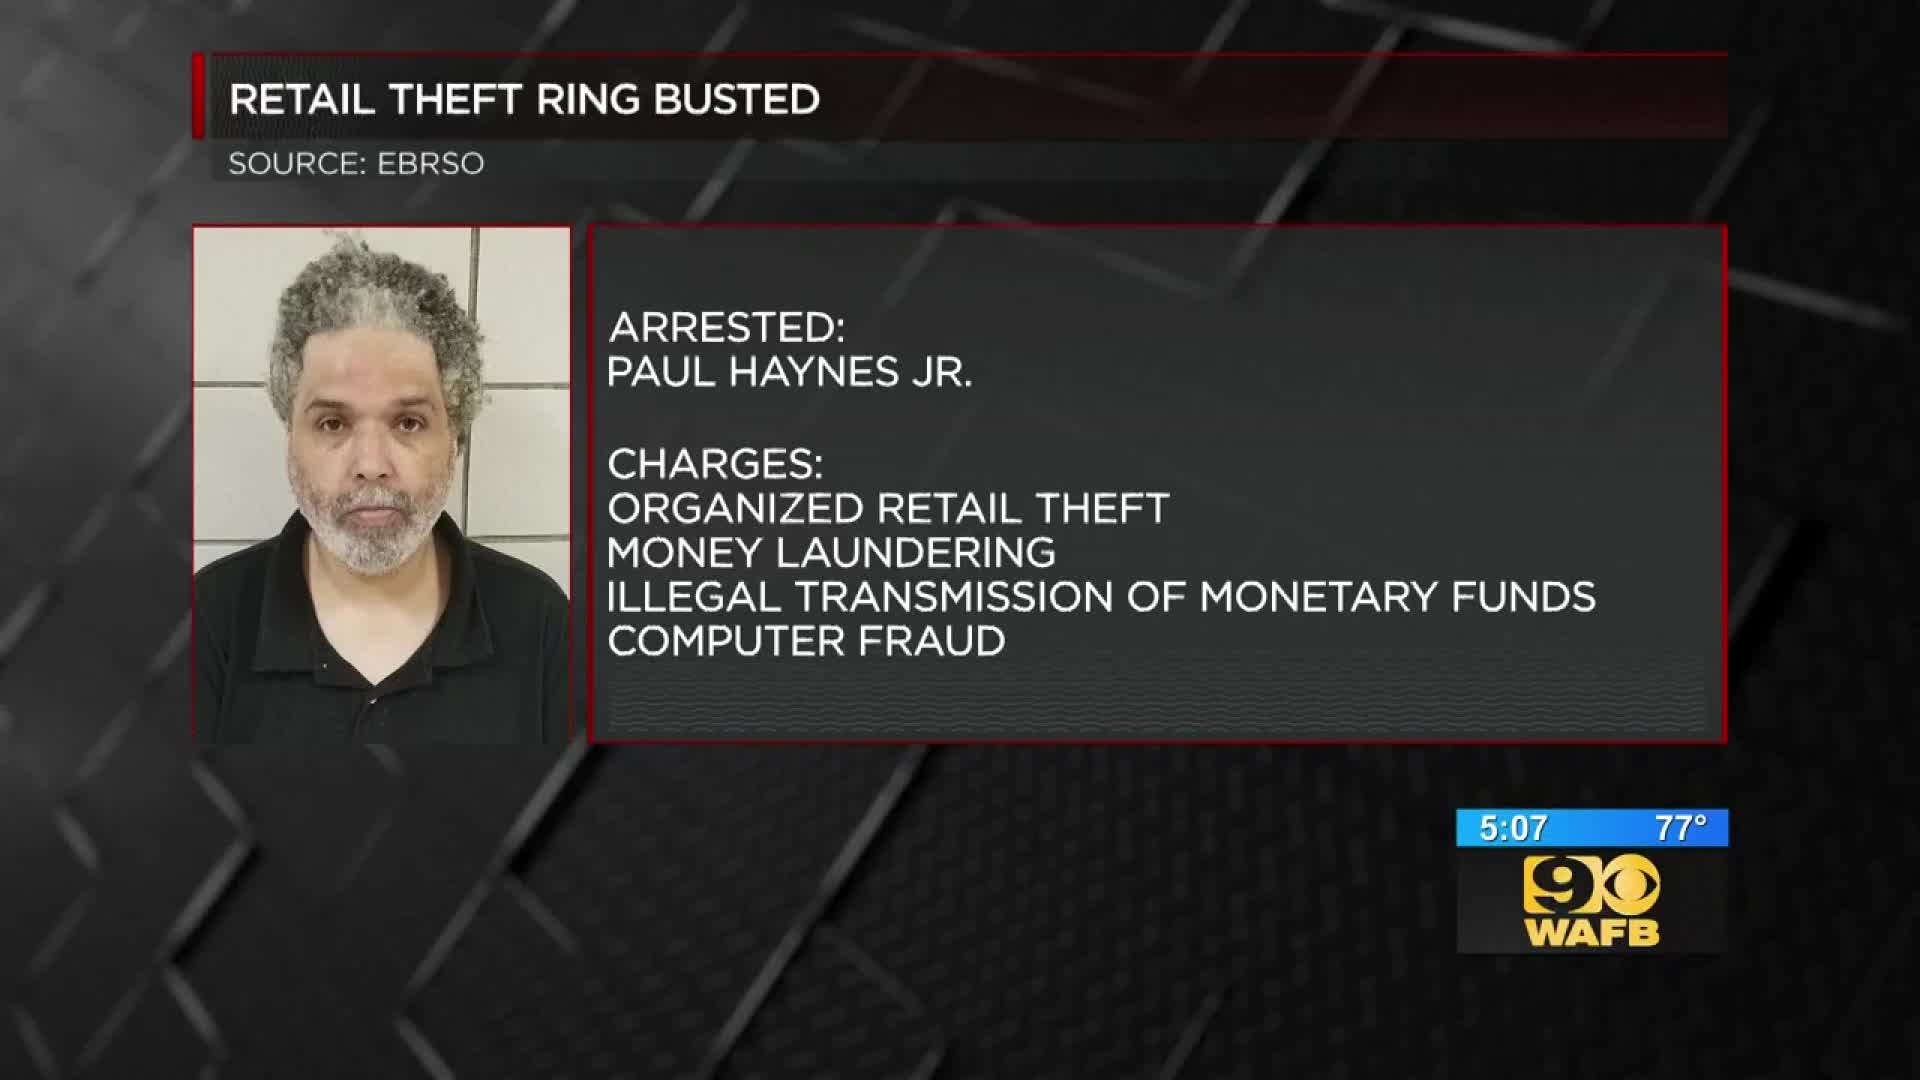 Man accused of hiring people to steal from Home Depot, Lowe's, then